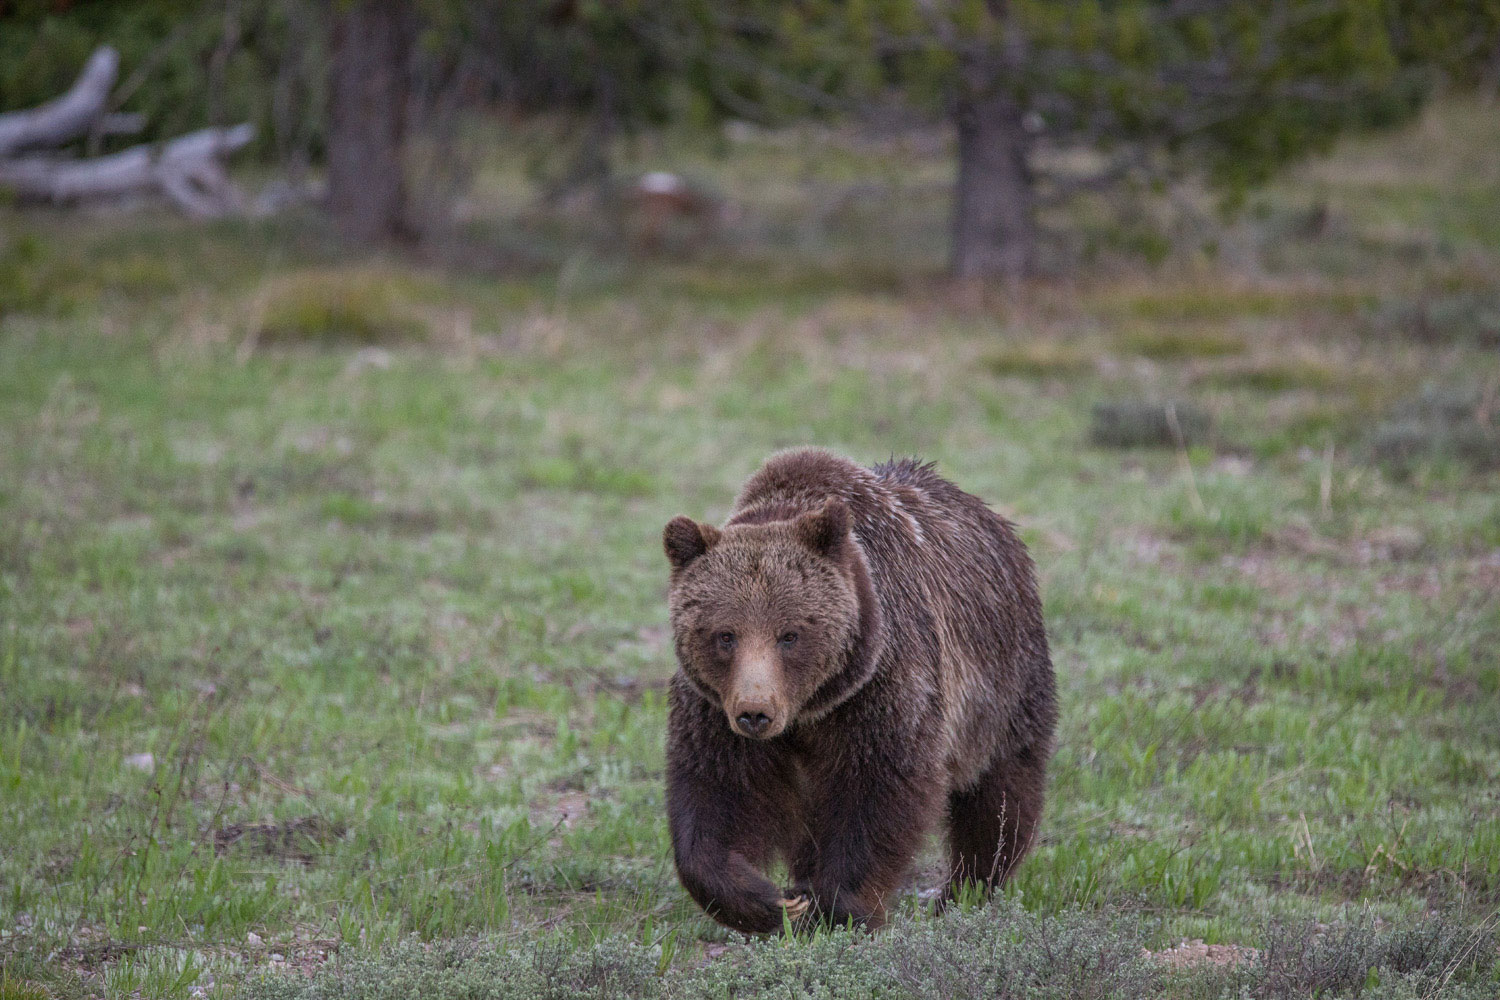 399, grizzly, bear, grand teton, photo, image, 2018, Tetons, photo